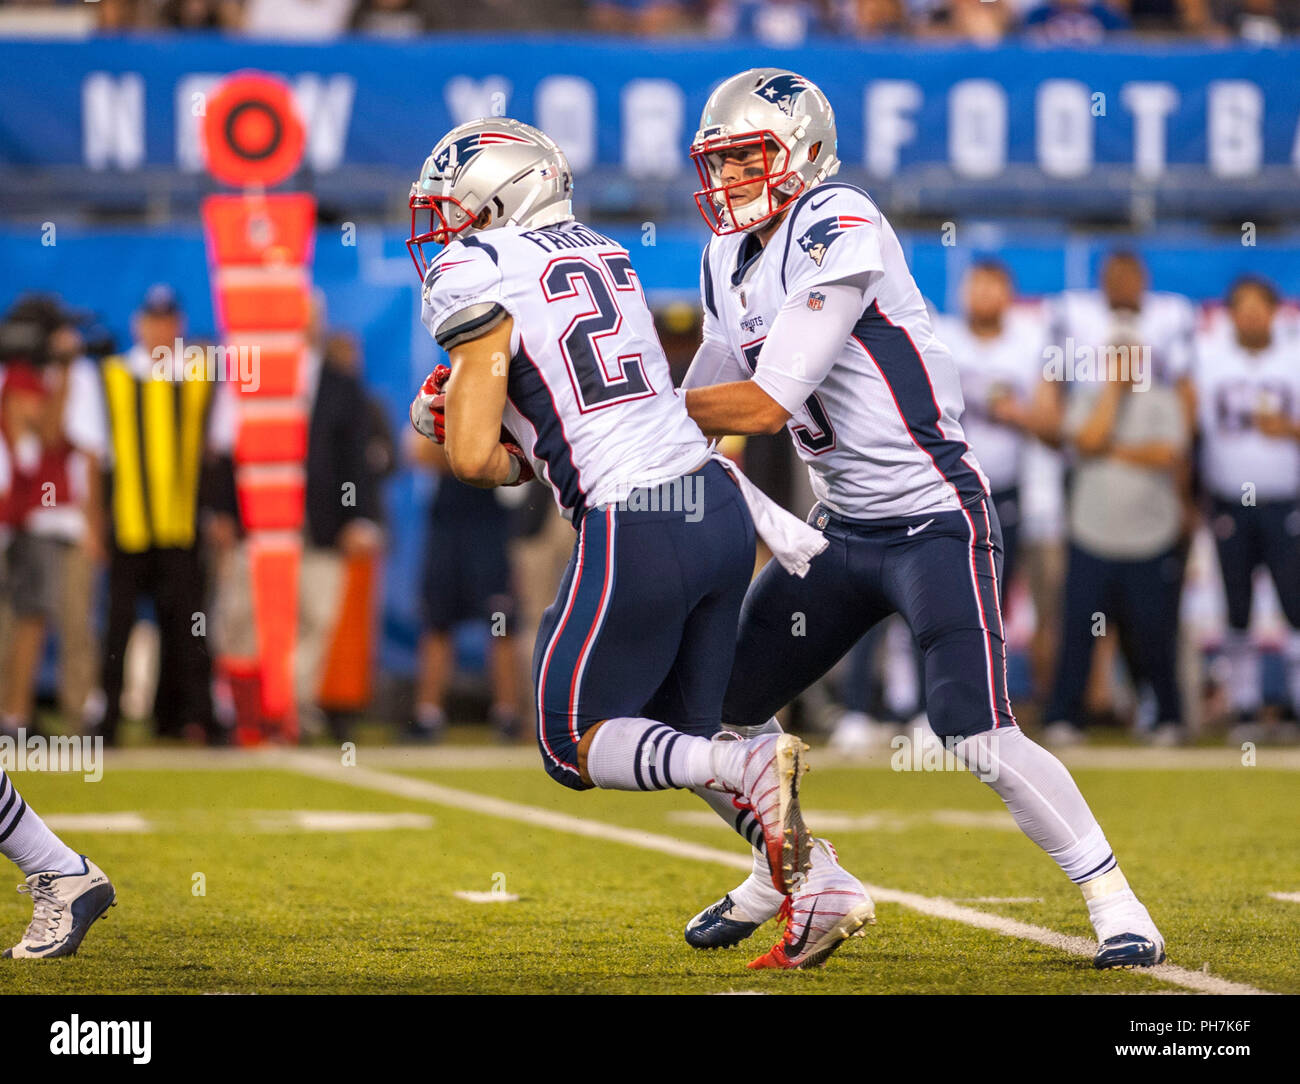 August 31, 2018 - East Rutherford, New Jersey, U.S. - New England Patriots quarterback Danny Etling (5) hands off to running back Kenneth Farrow (27) during a preseason game between the New England Patriots and the New York Giants at MetLife Stadium in East Rutherford, New Jersey. Duncan Williams/CSM - Stock Image